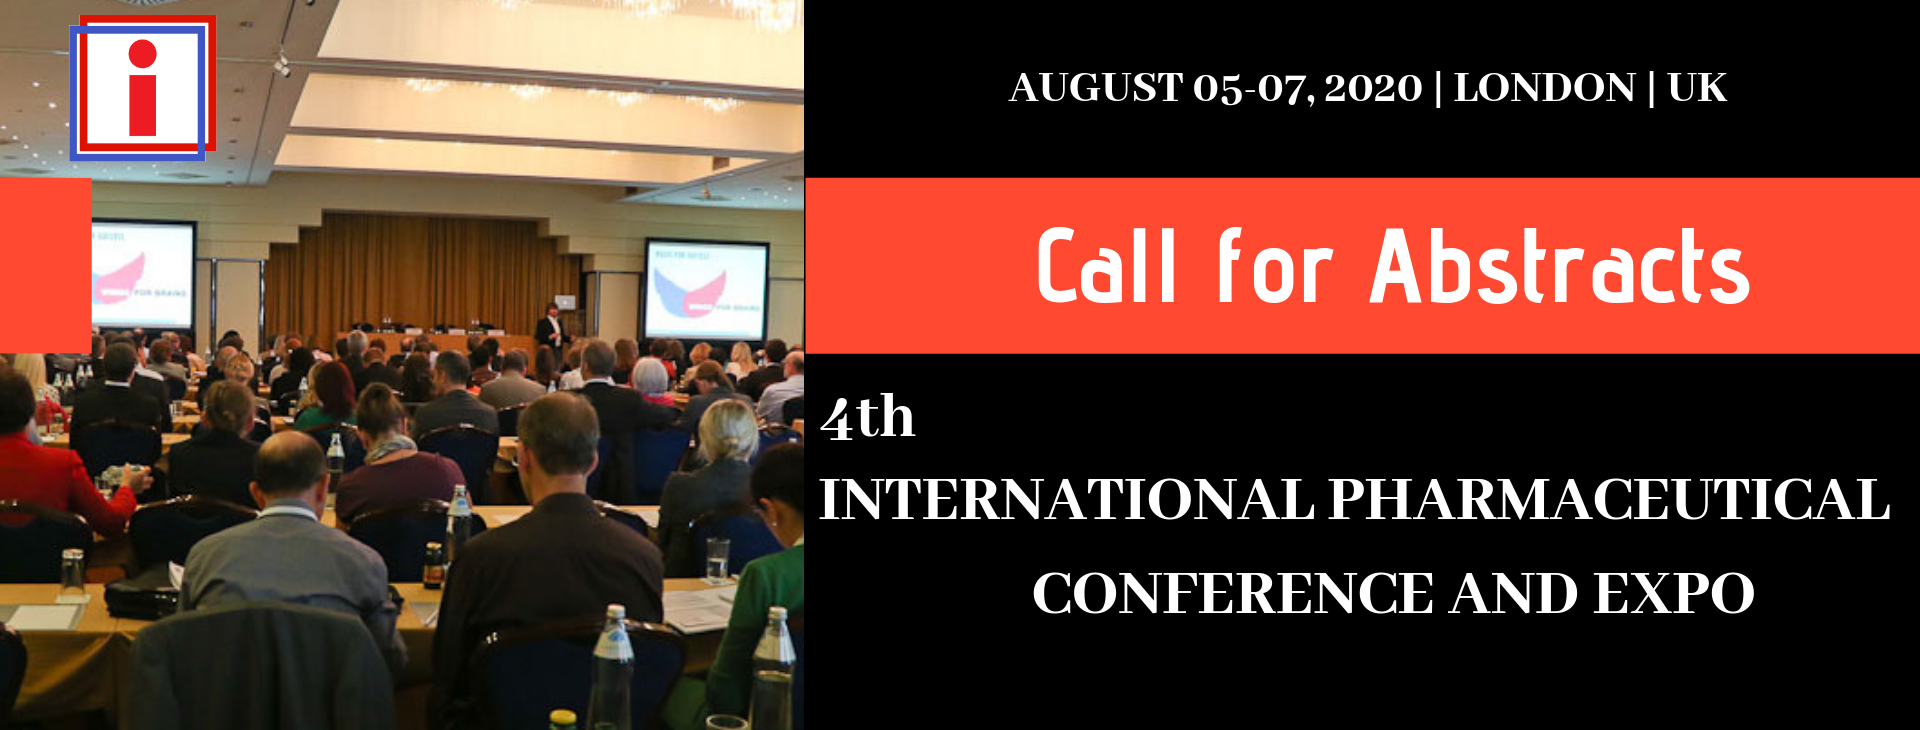 i Pharma call for abstracts banner